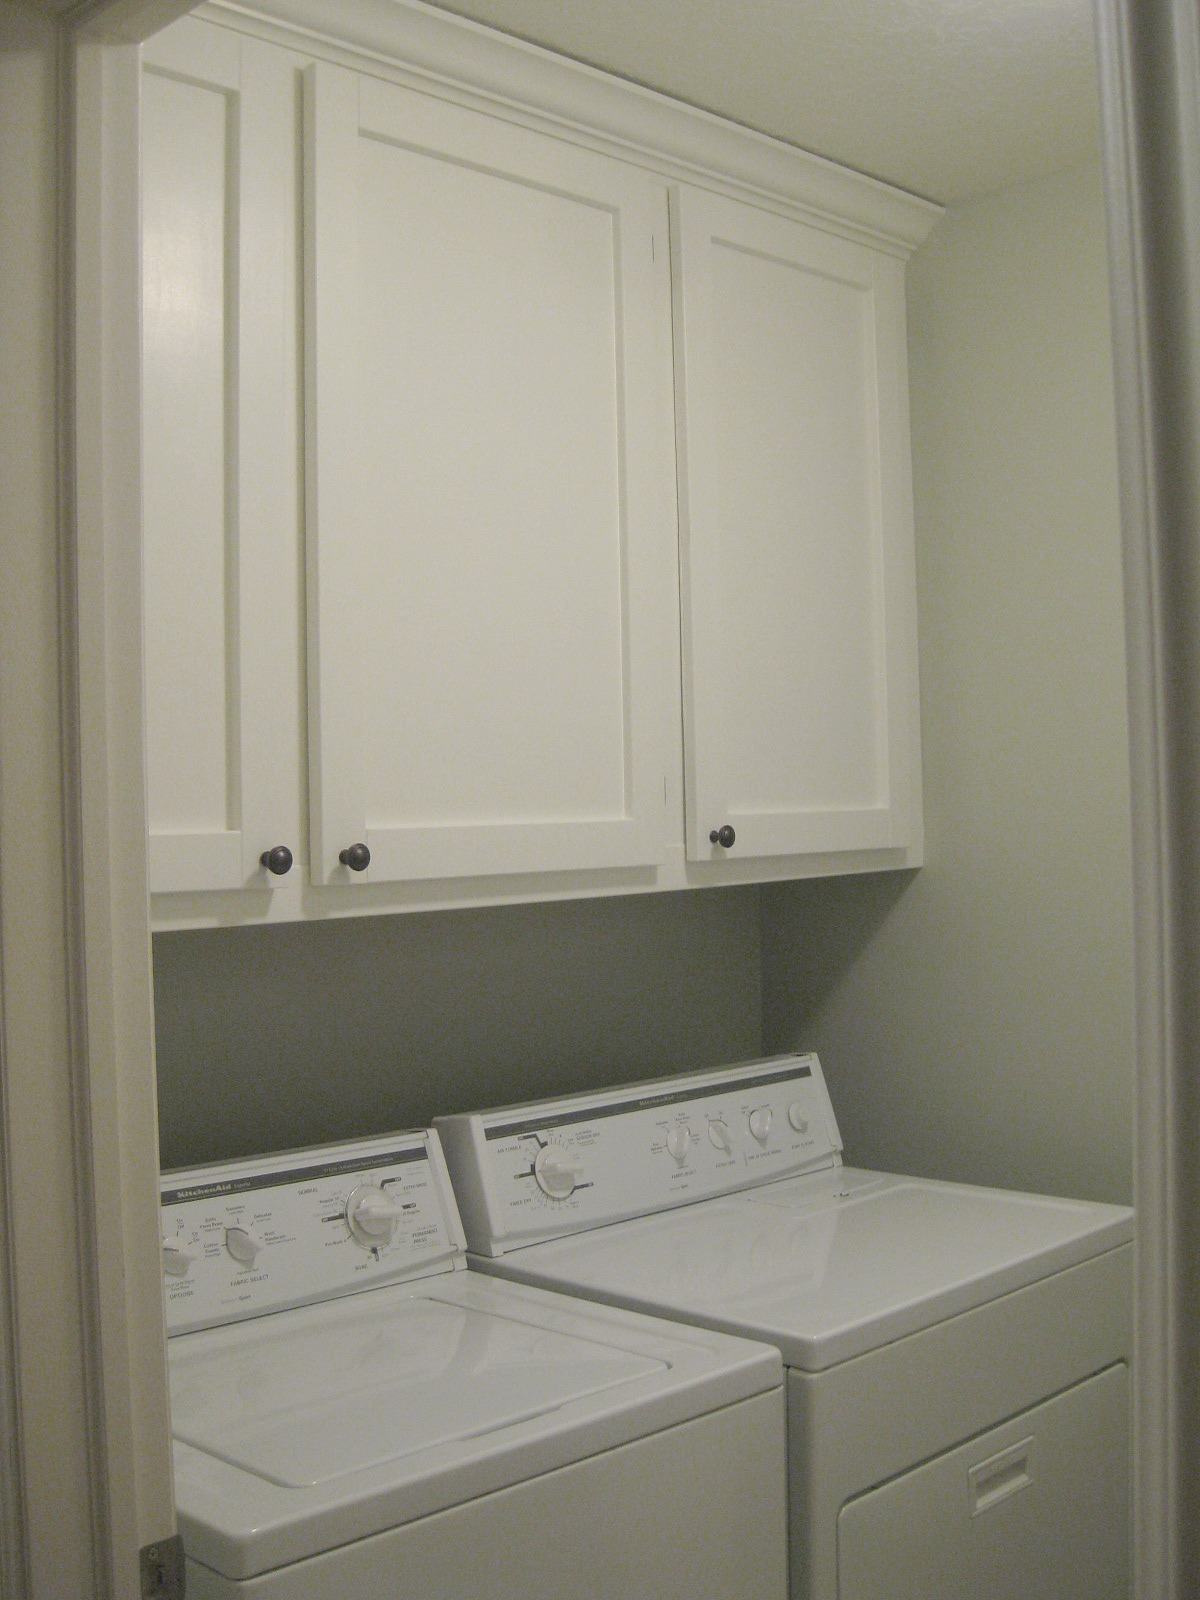 Painted Bathroom Vanity Ideas Tda Decorating And Design Laundry Room Custom Cabinet Reveal